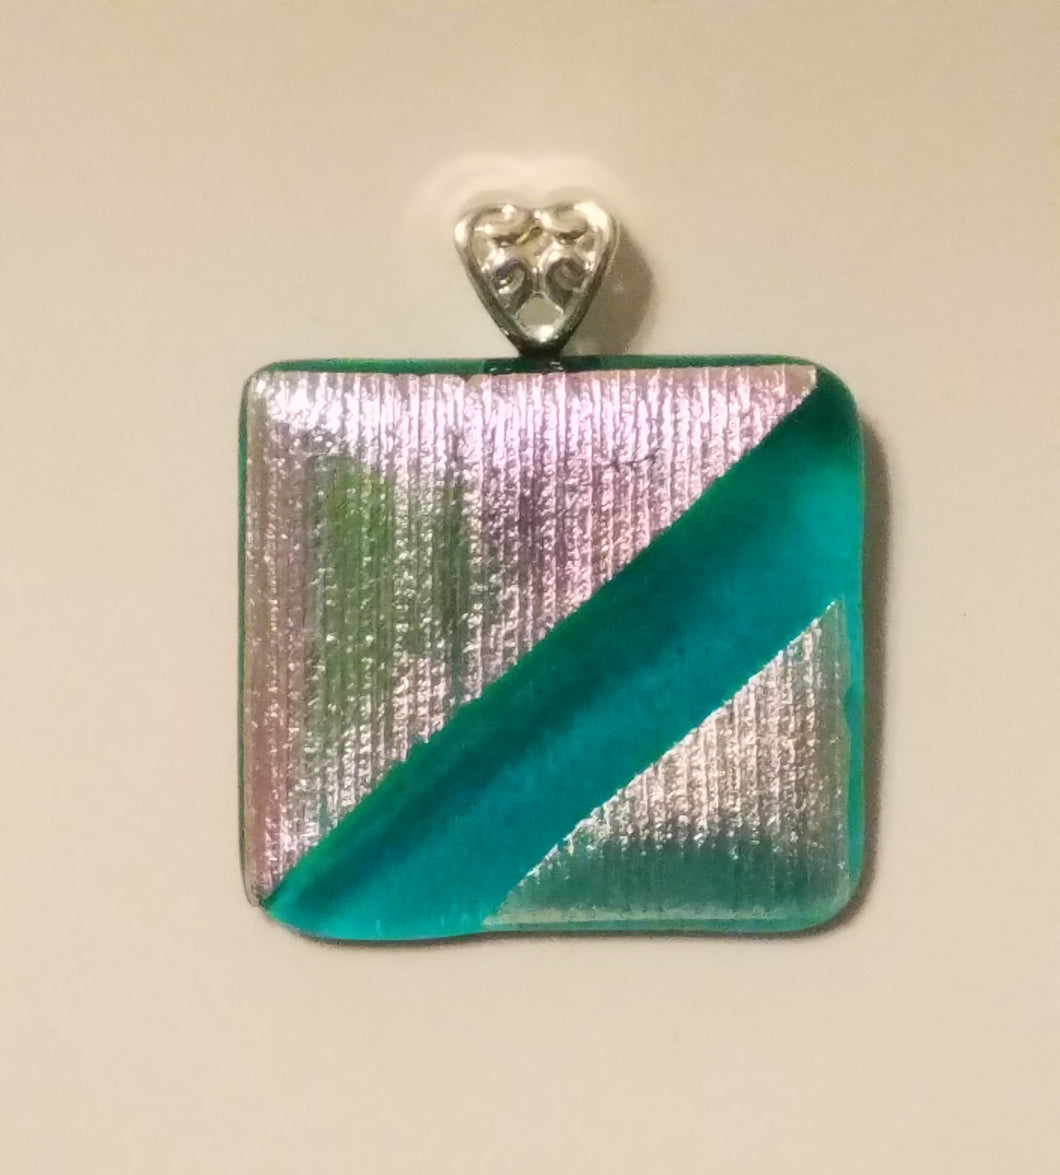 Pink & gold textured striped dichroic glass triangles fused to teal translucent glass. Pendant